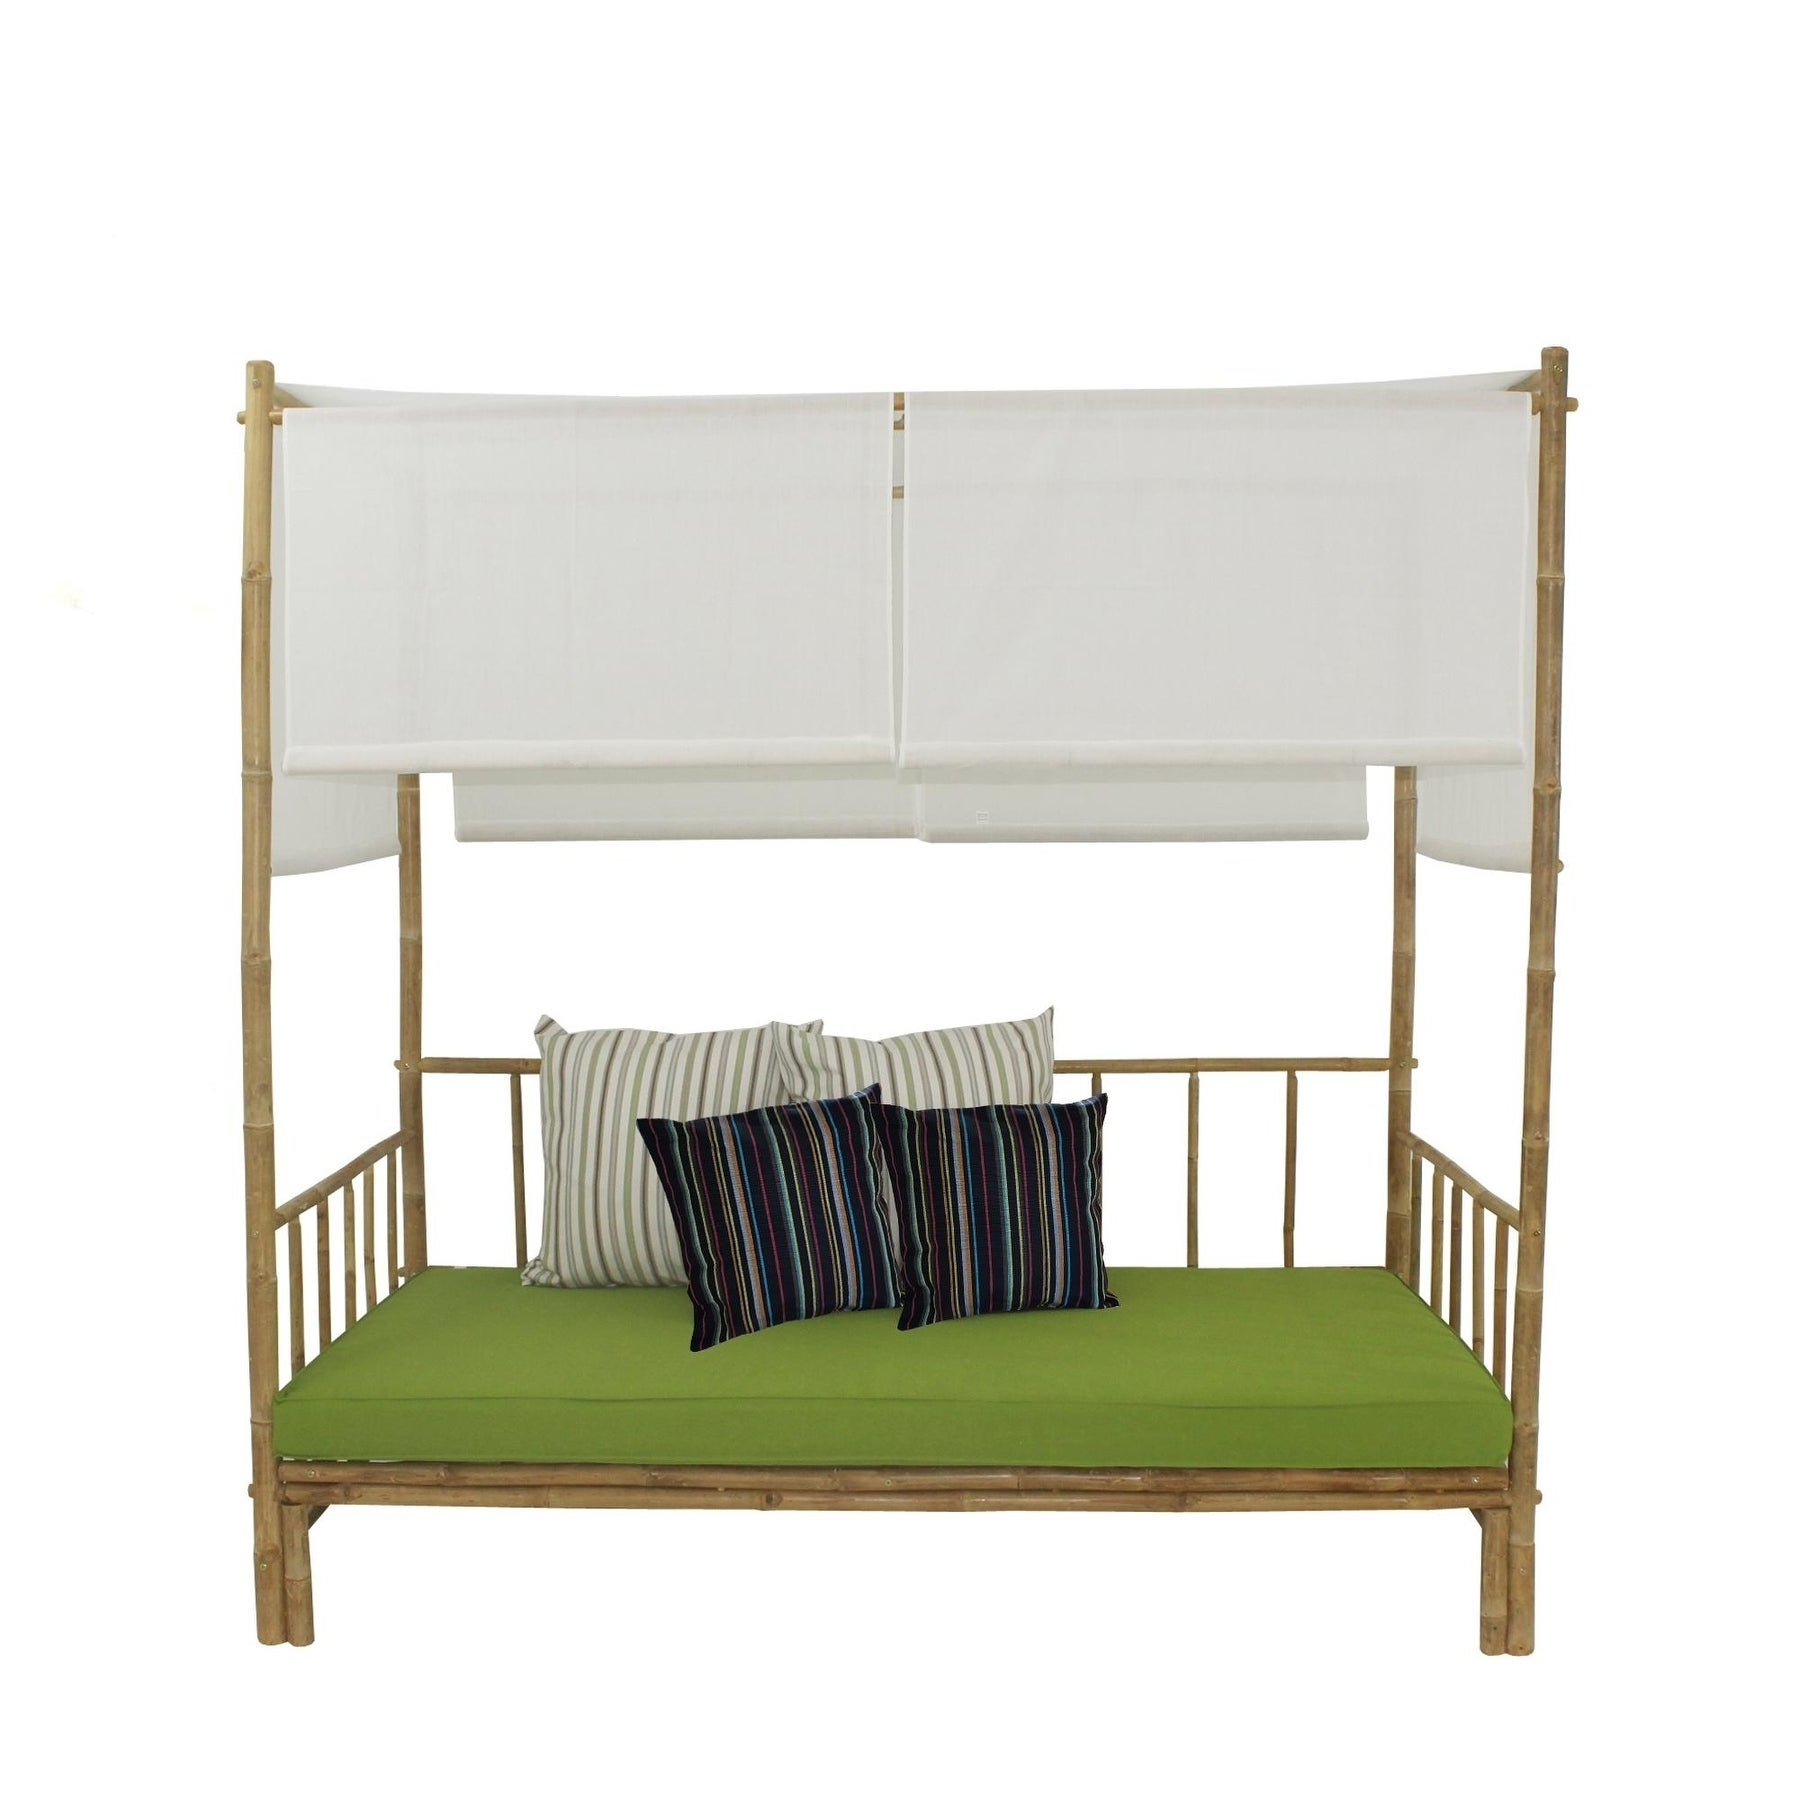 Bamboo Daybed With Canopy Throughout Most Popular Bamboo Daybeds With Canopy (View 4 of 25)